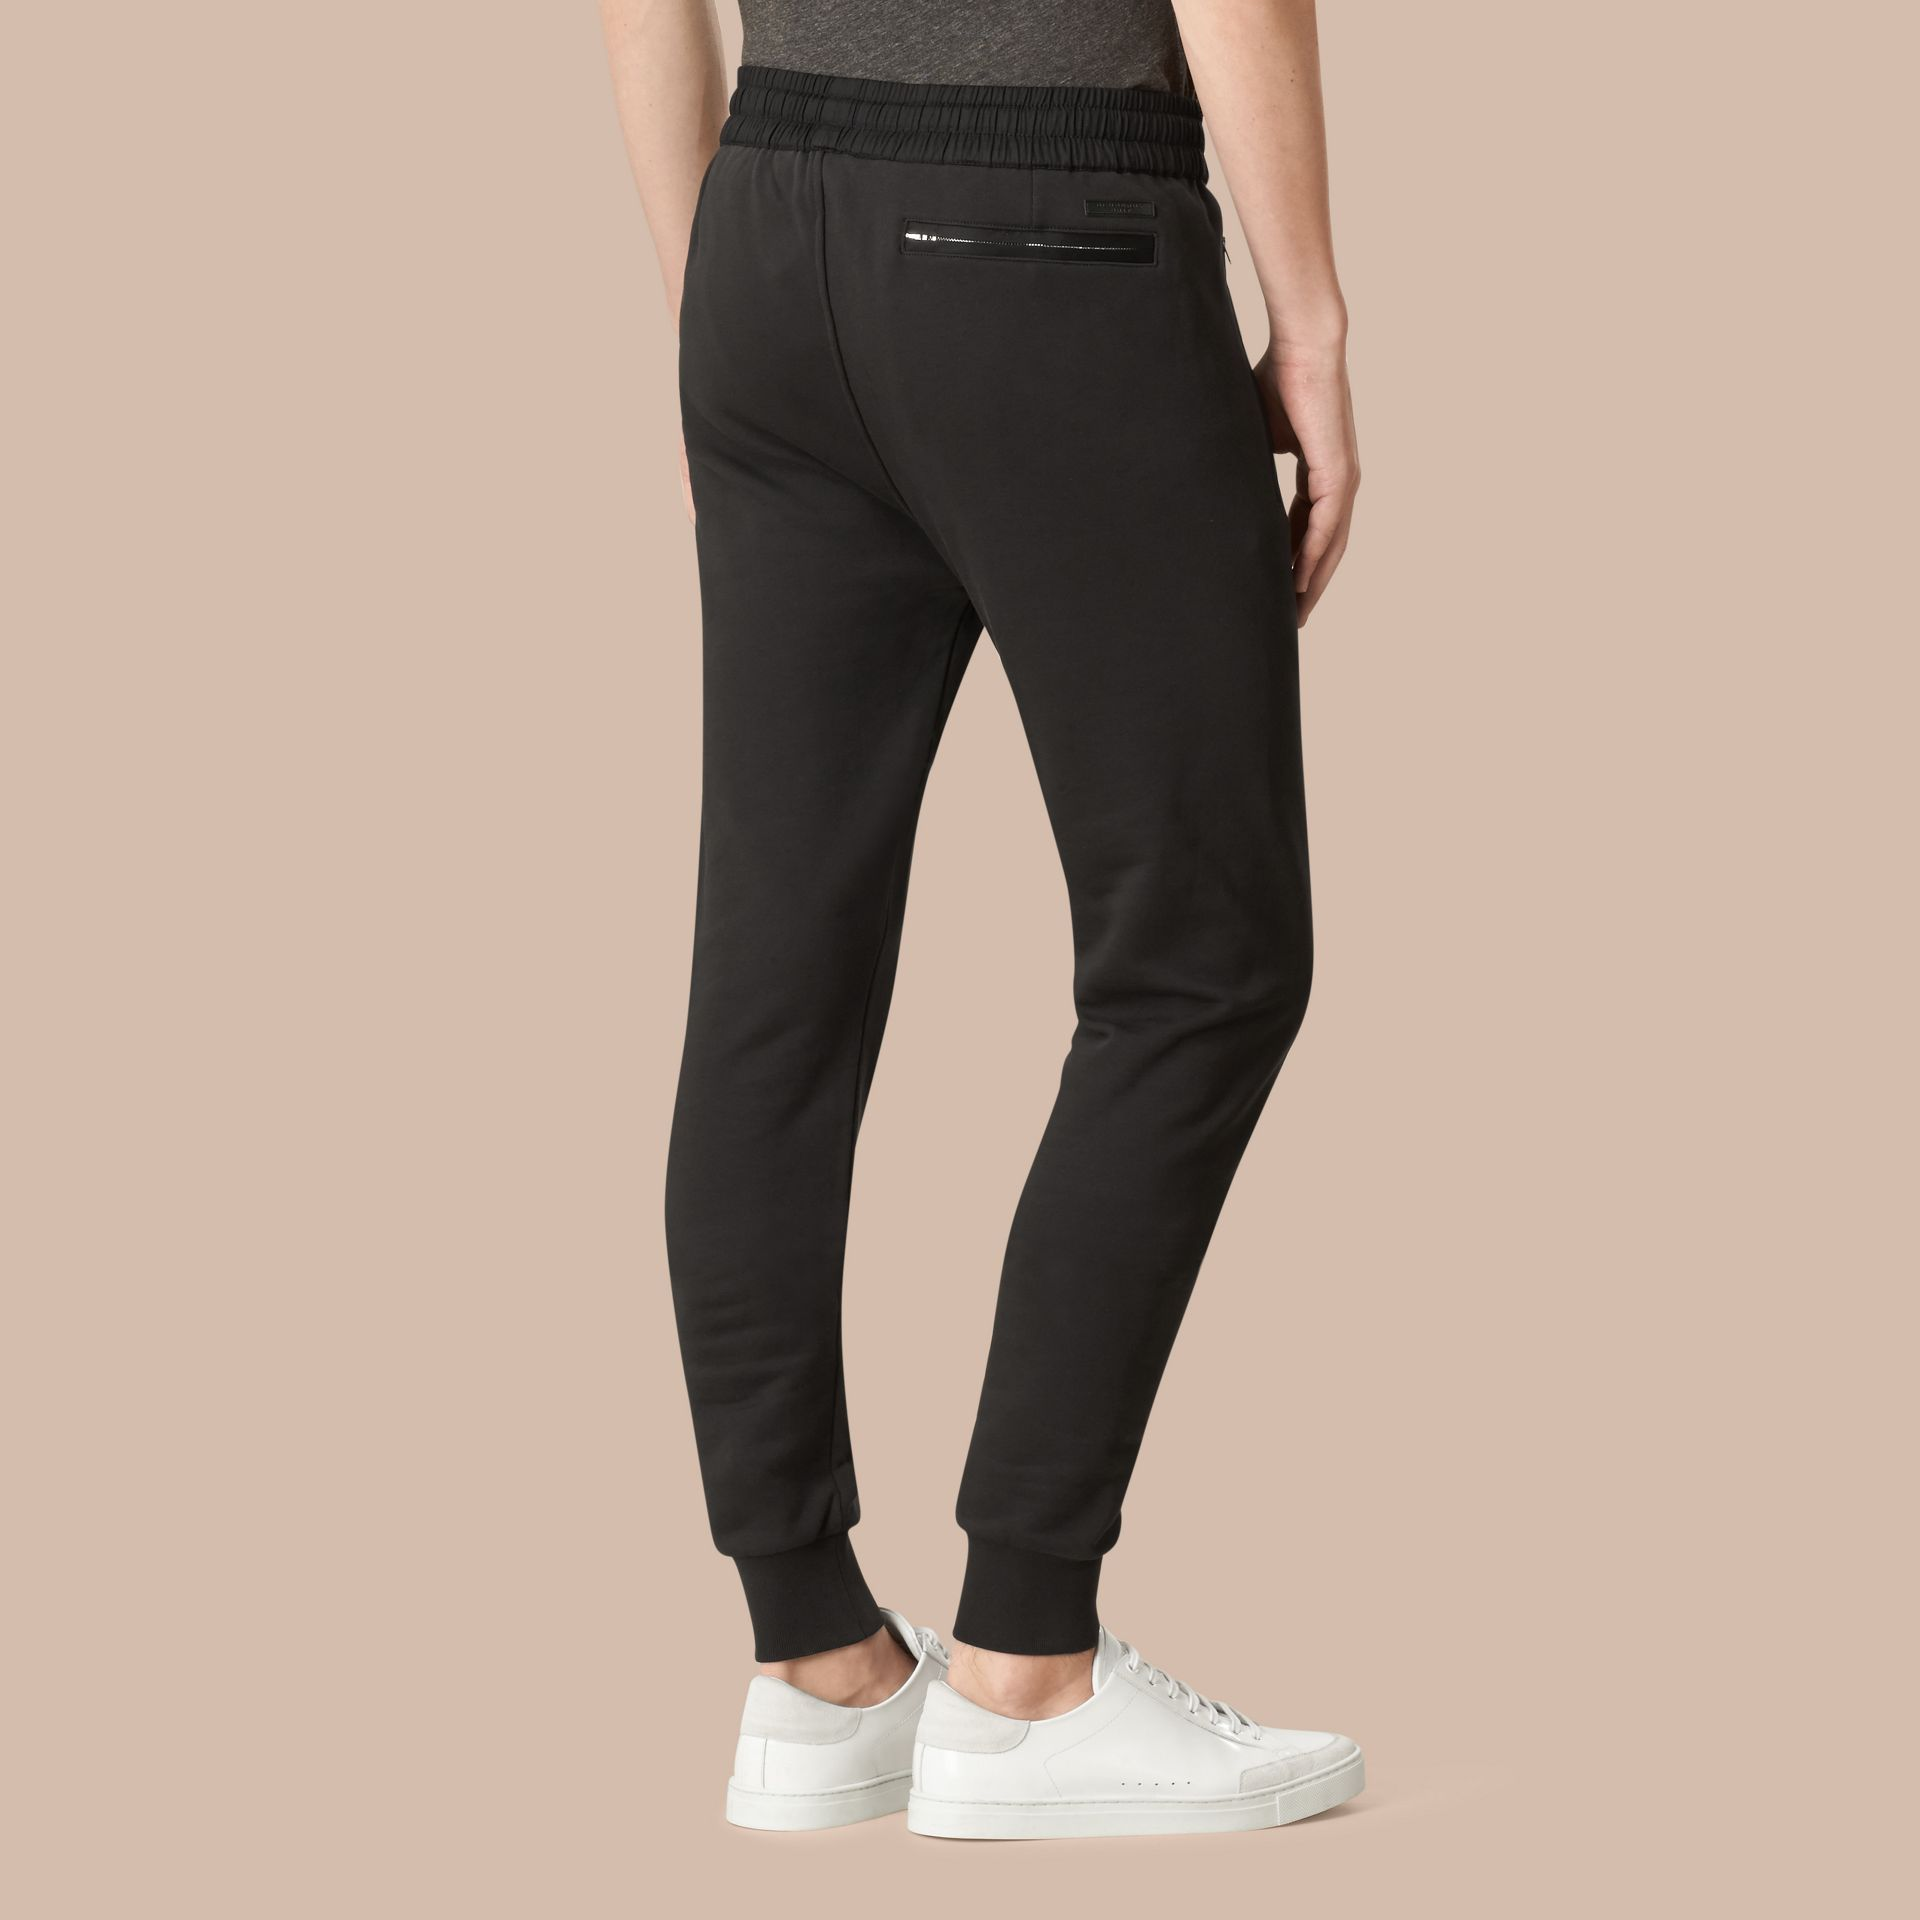 Black Cotton Sweat pants Black - gallery image 3